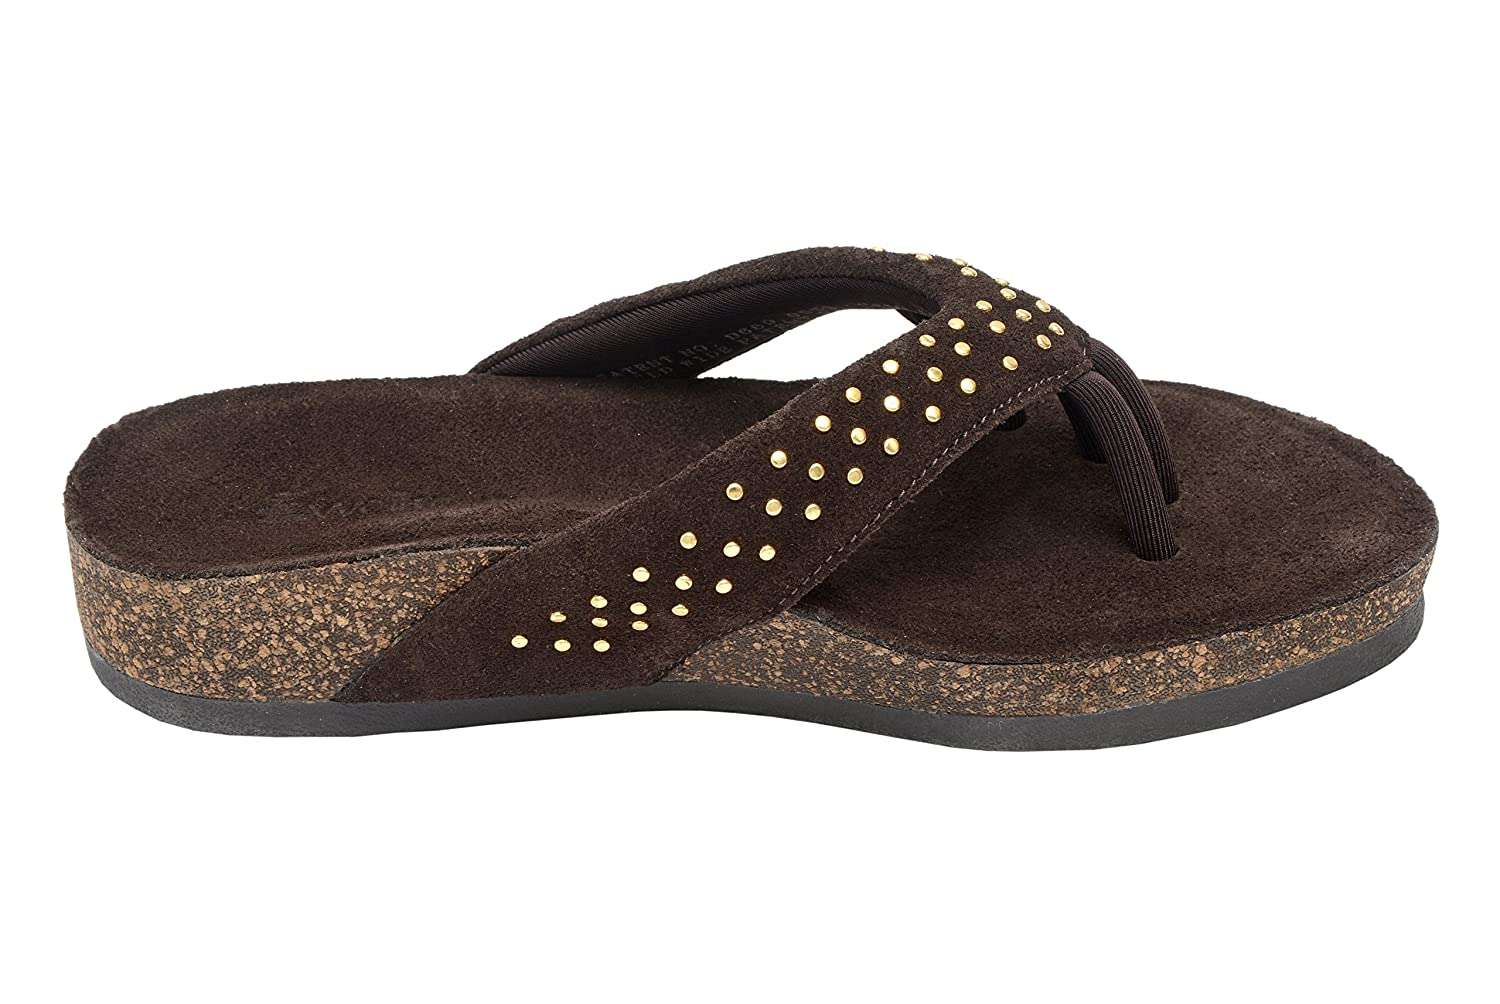 Wellrox Women's Santa Fee-Mila Casual Sandal B00LM8O05A 6 B(M) US|Dark Chocolate